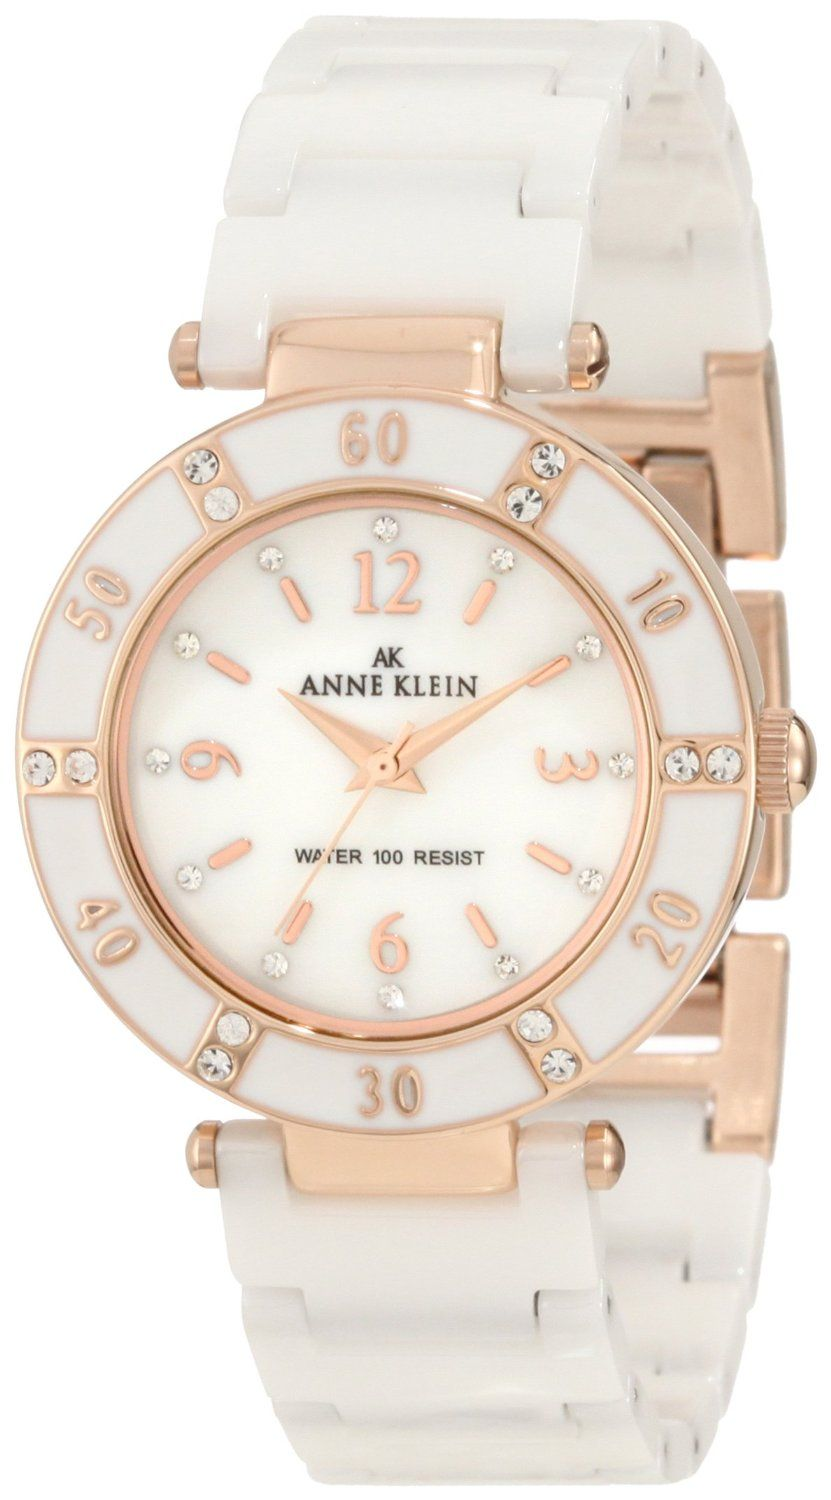 684feedce Anne Klein Women's 109416RGWT Swarovski Crystal Accented Rosegold-Tone  White Ceramic Watch